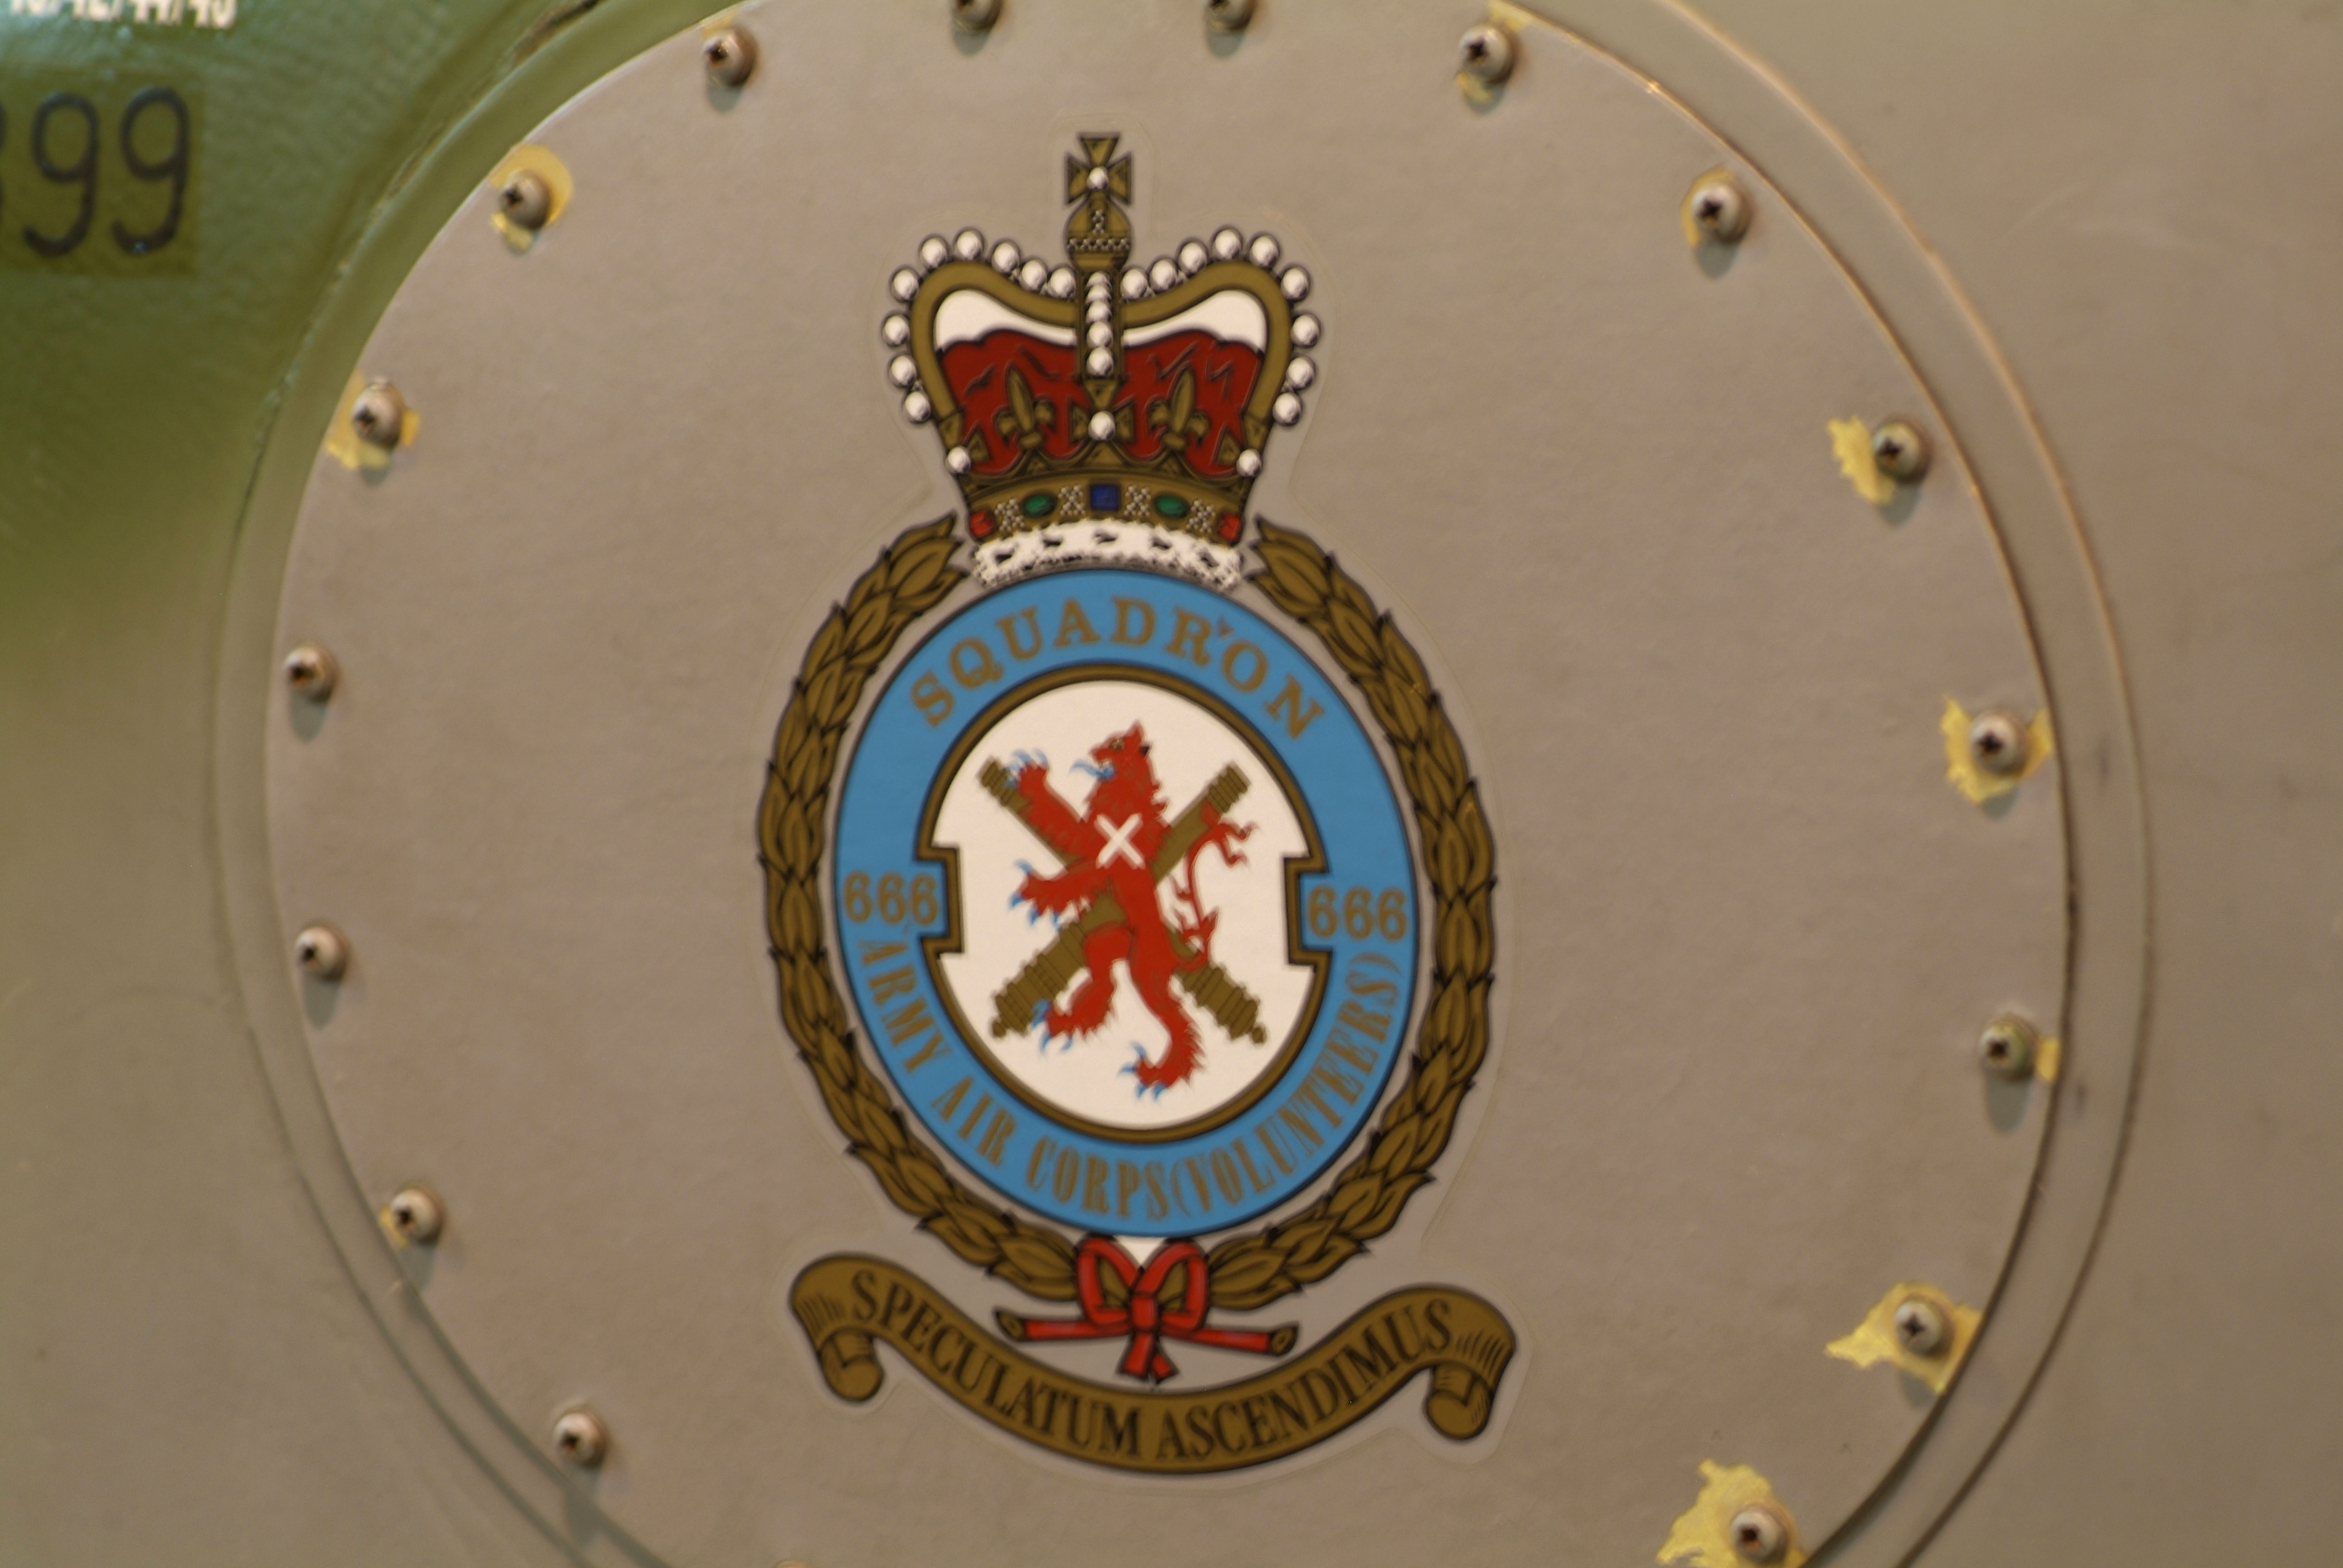 File666 squadron army air corps badge 4013952081g file666 squadron army air corps badge 4013952081g biocorpaavc Gallery